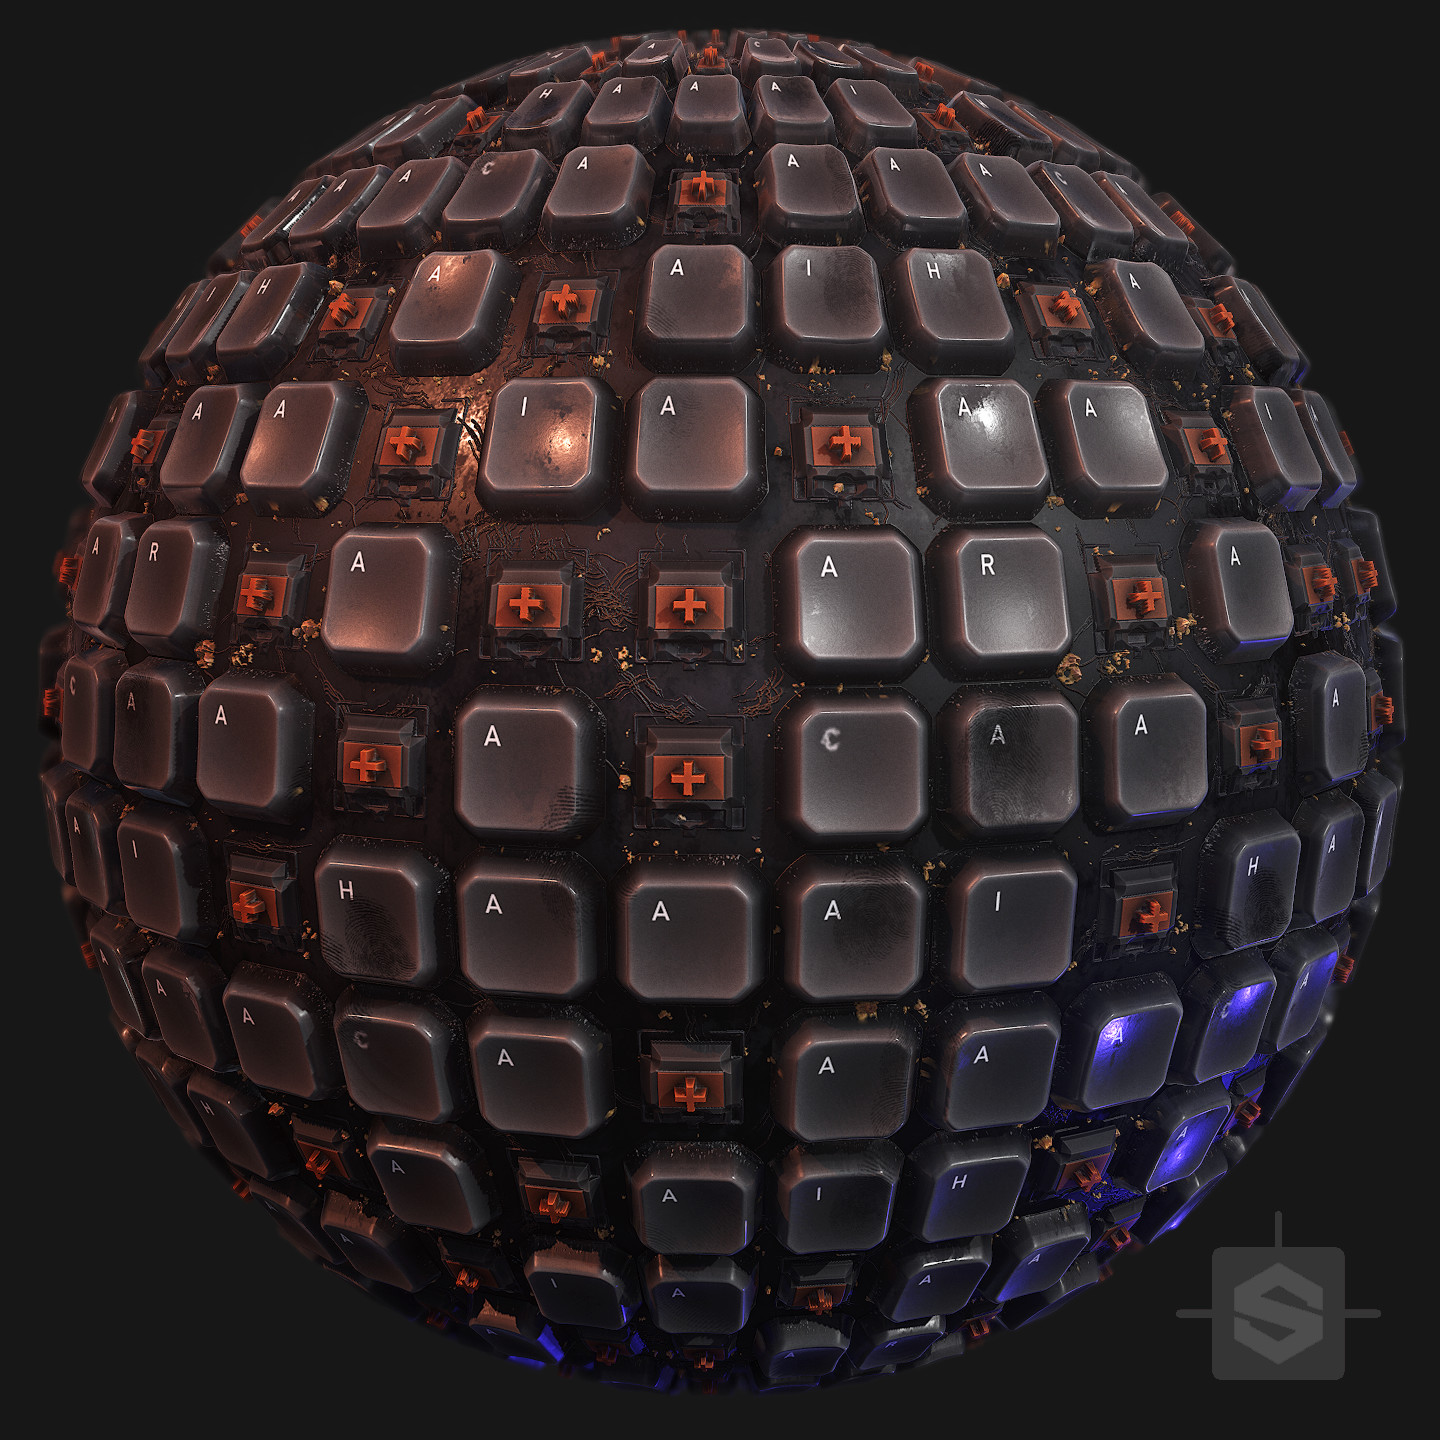 Keyboard Keys - Substance Designer